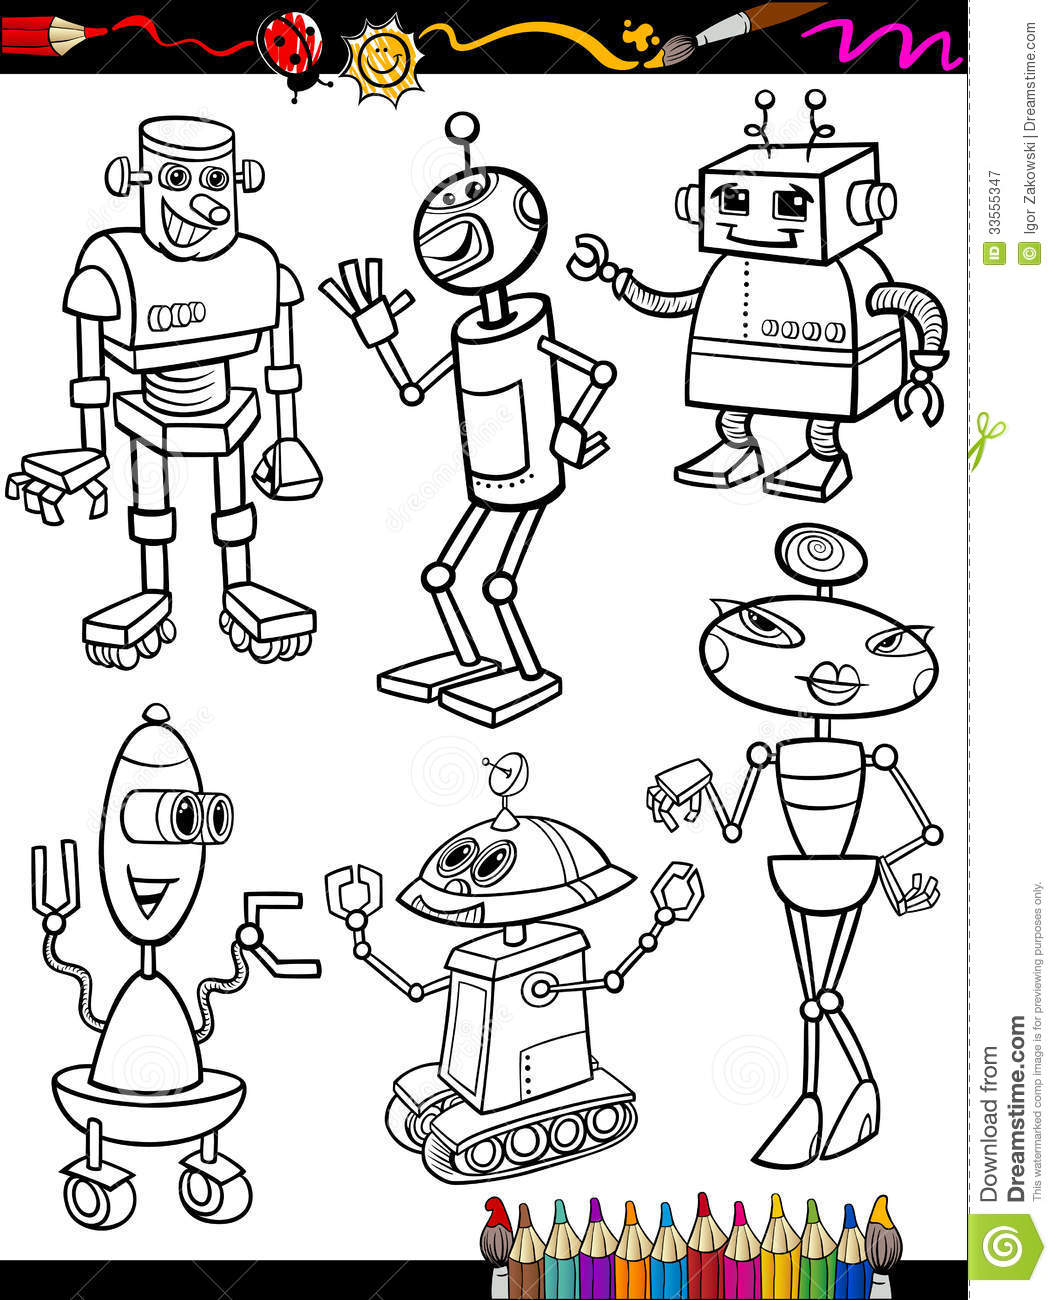 Blank Faces Coloring Page 20  Dabbles amp Babbles